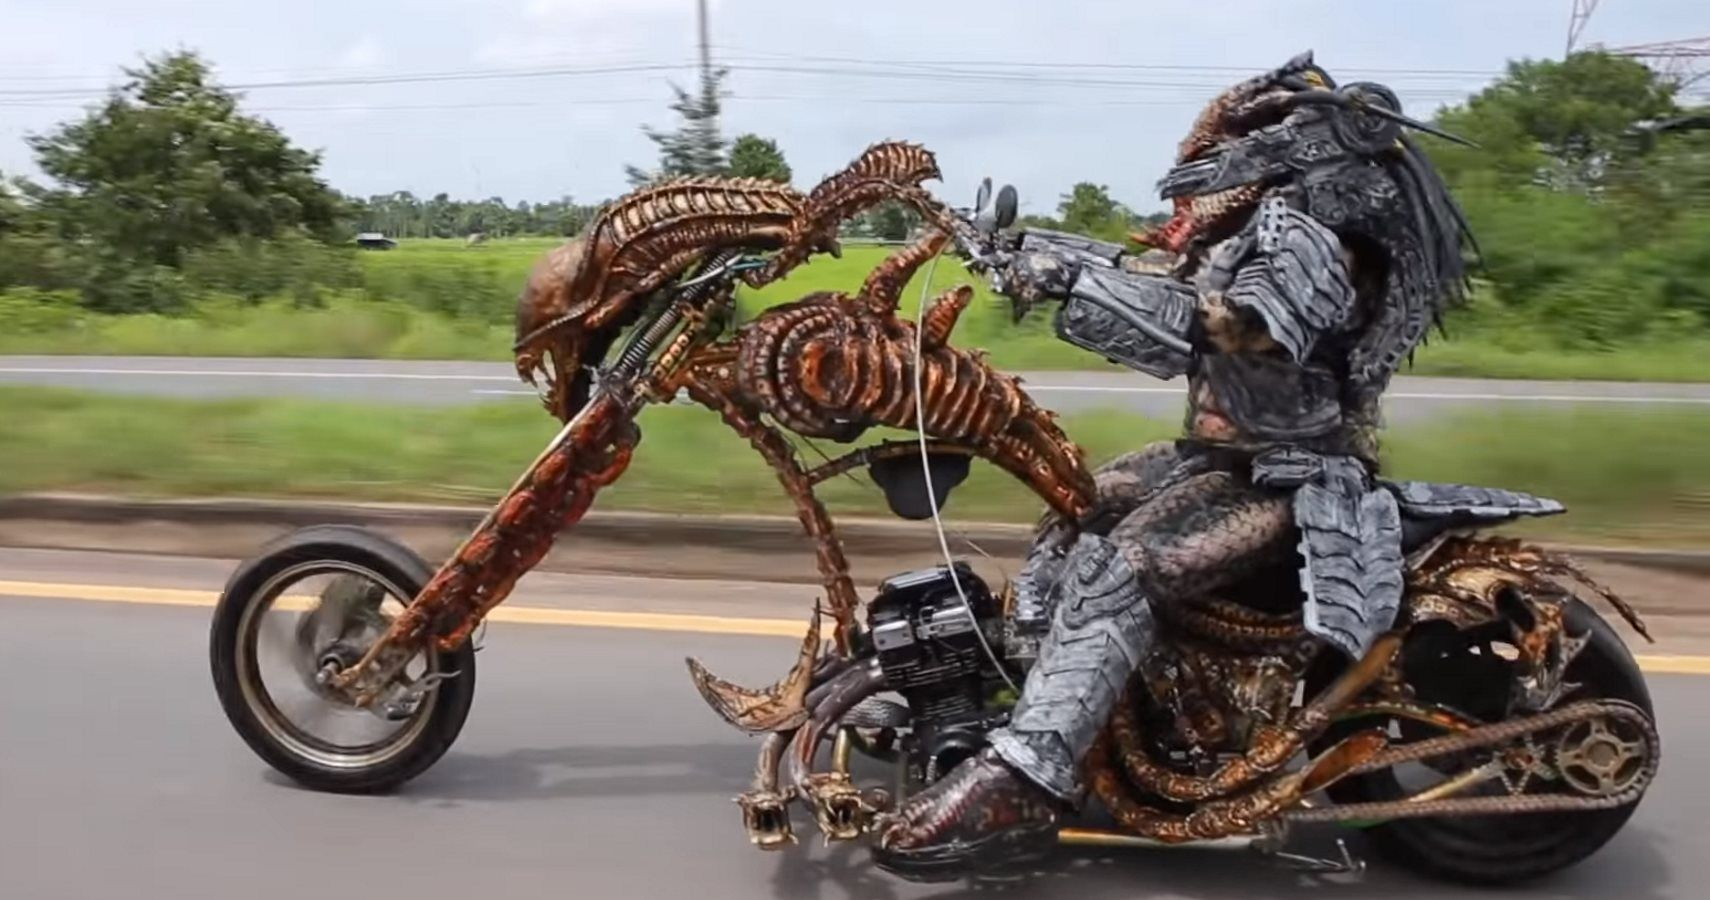 Check Out This Alien Themed Motorcycle Driven By Predator